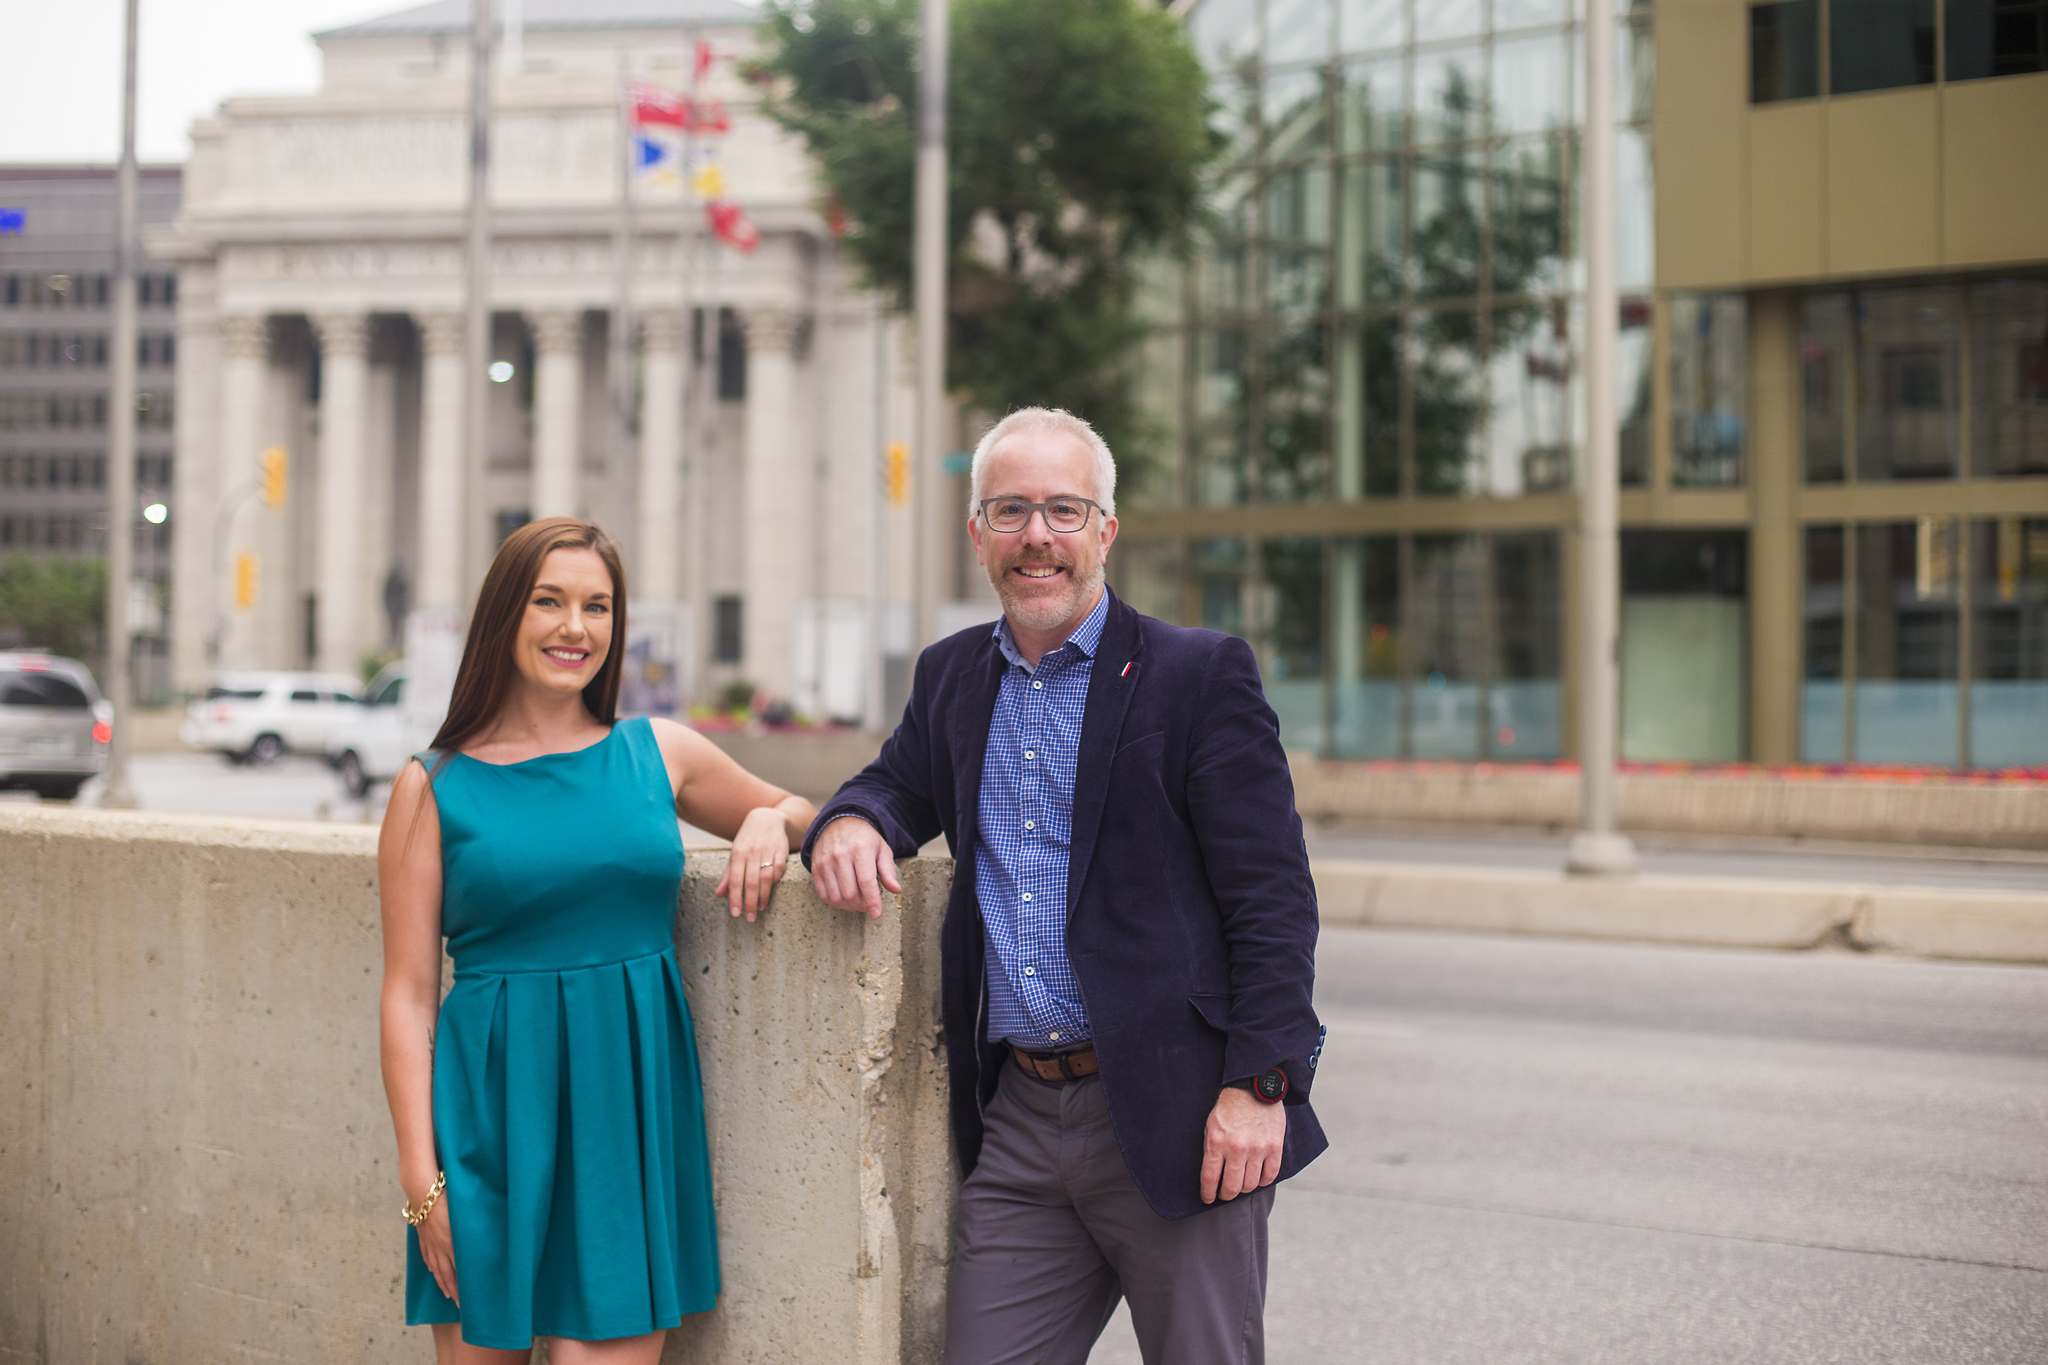 Coalition for Portage &amp; Main members Alyson Shane (left) and Adam Dooley announced the launch of a GoFundMe campaign aimed at raising money for advertising, signs and rallies before the Oct. 24 municipal election that will include a question about reopening the intersection. (Mikaela MacKenzie / Winnipeg Free Press)</p></p>